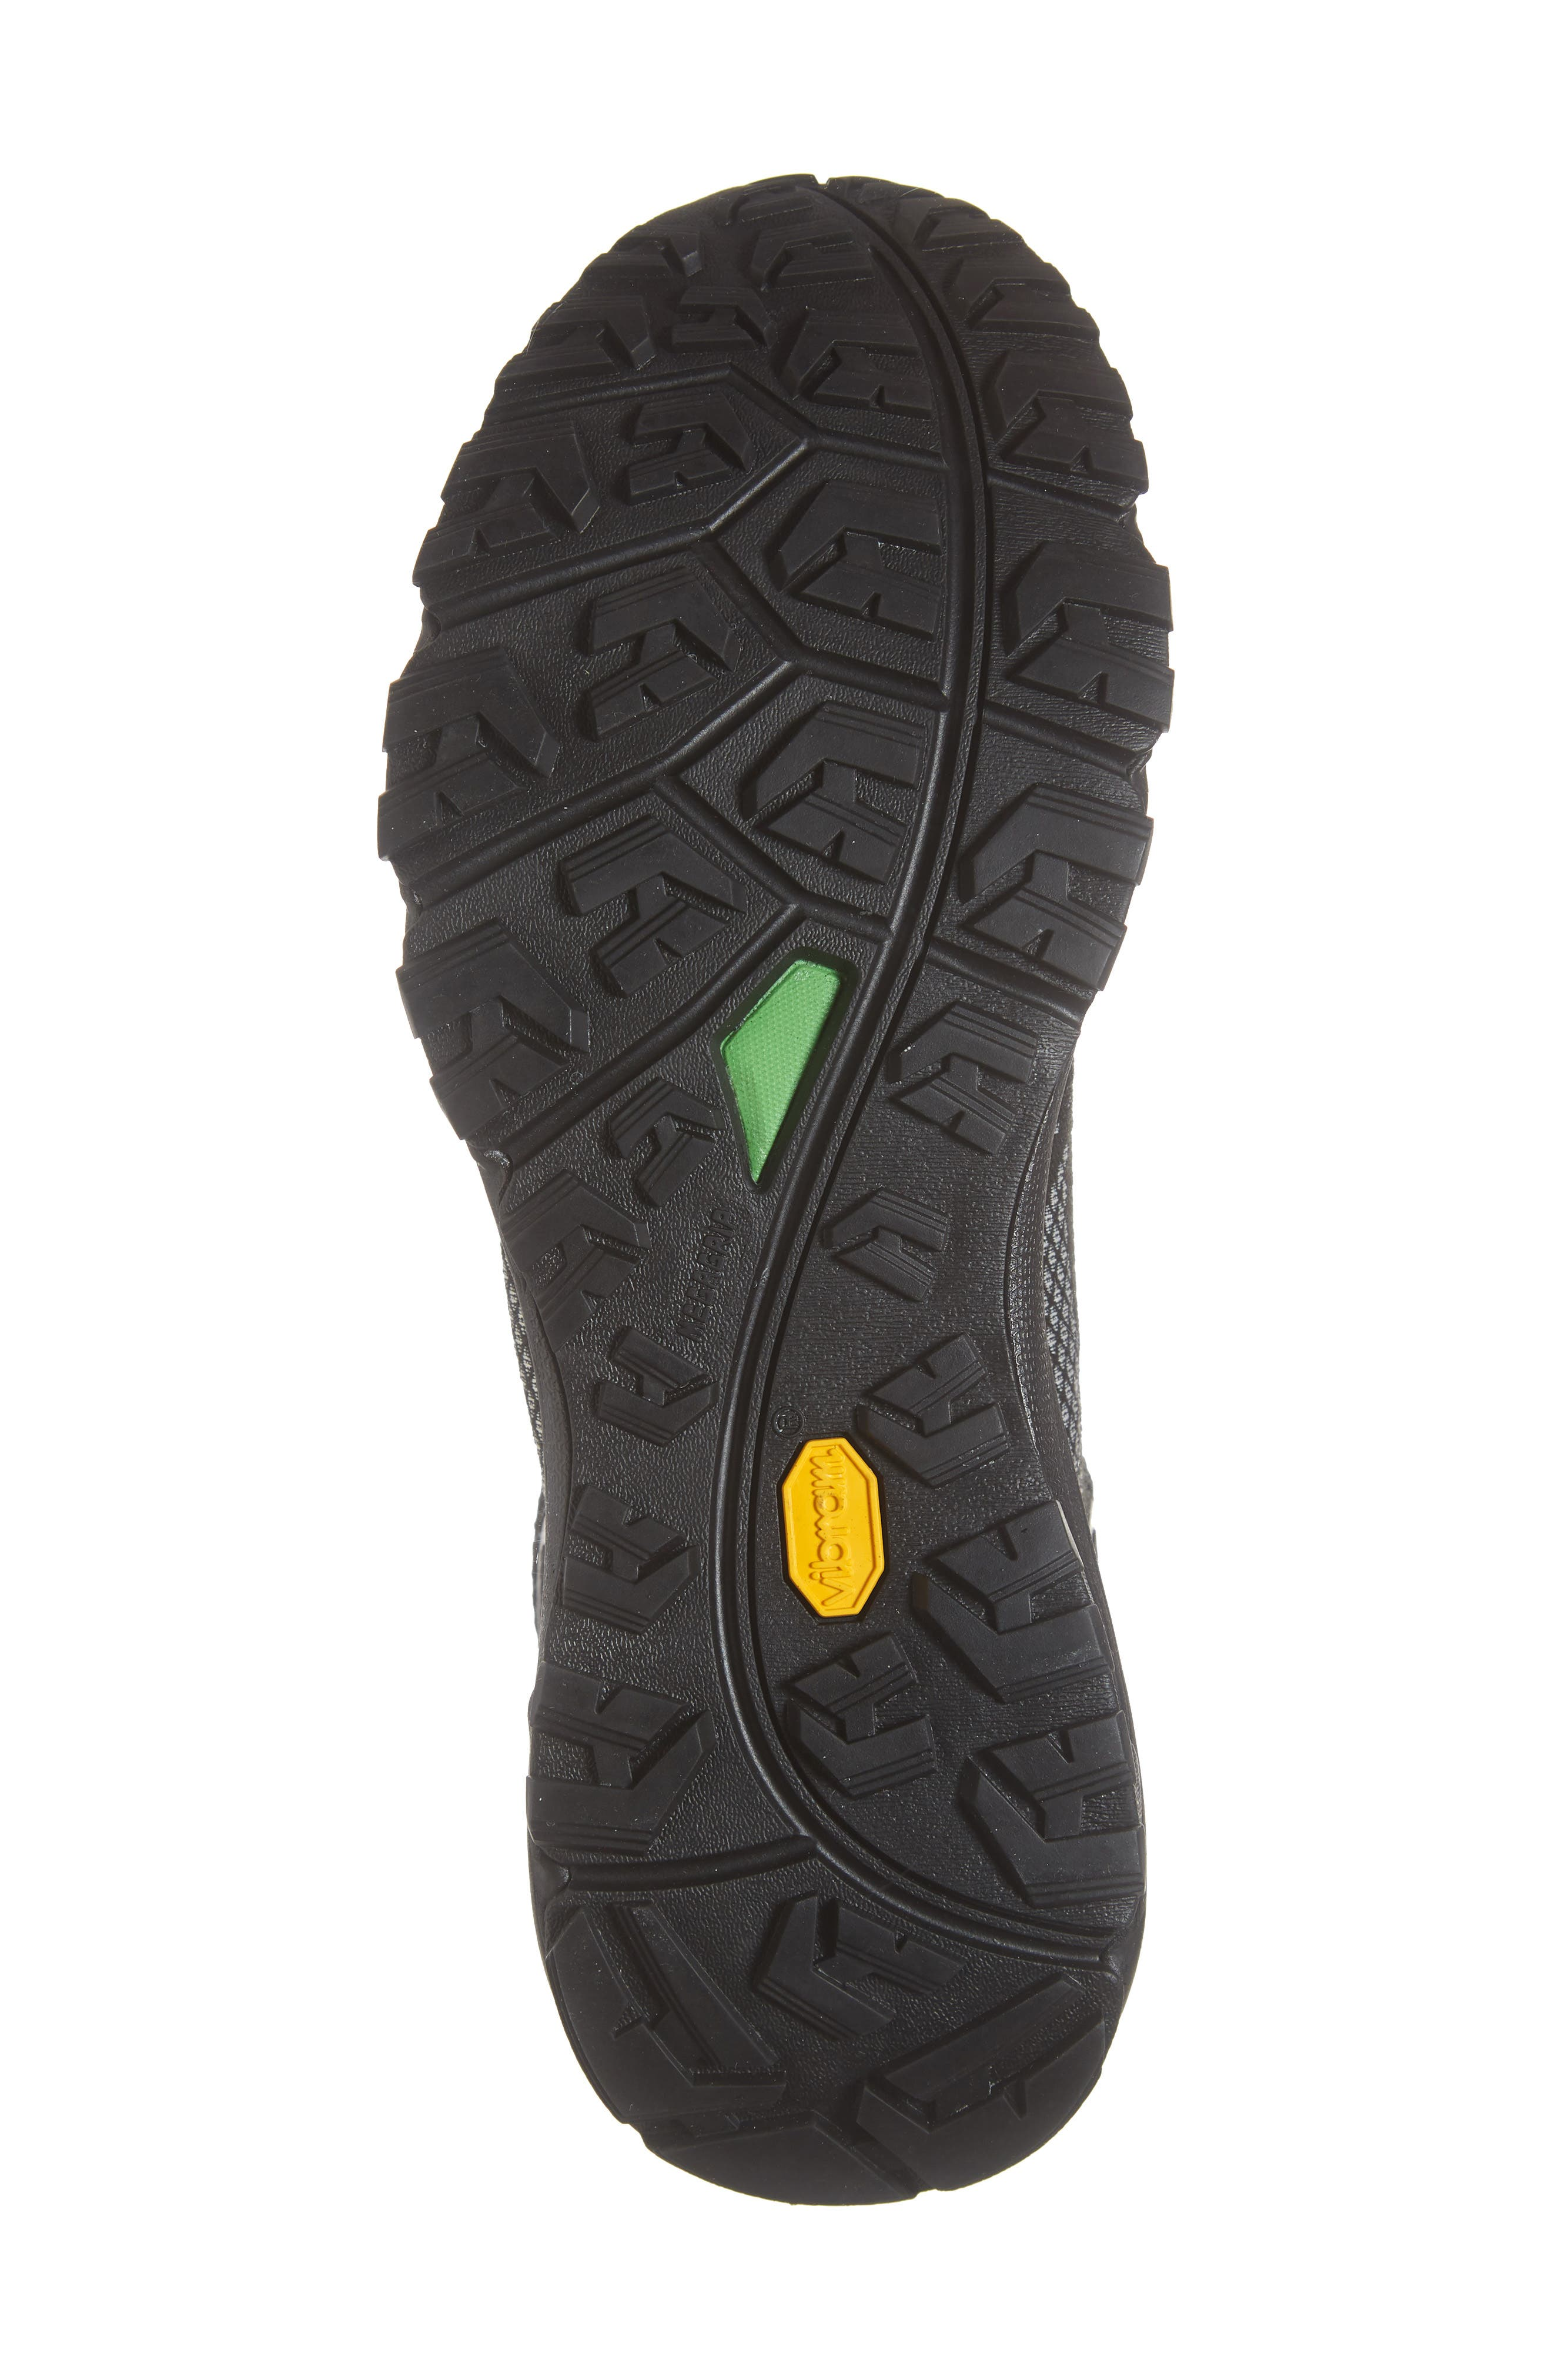 Ultra Fastpack III Mid Top Gore-Tex<sup>®</sup> Hiking Boot,                             Alternate thumbnail 6, color,                             BLACK/ WHITE